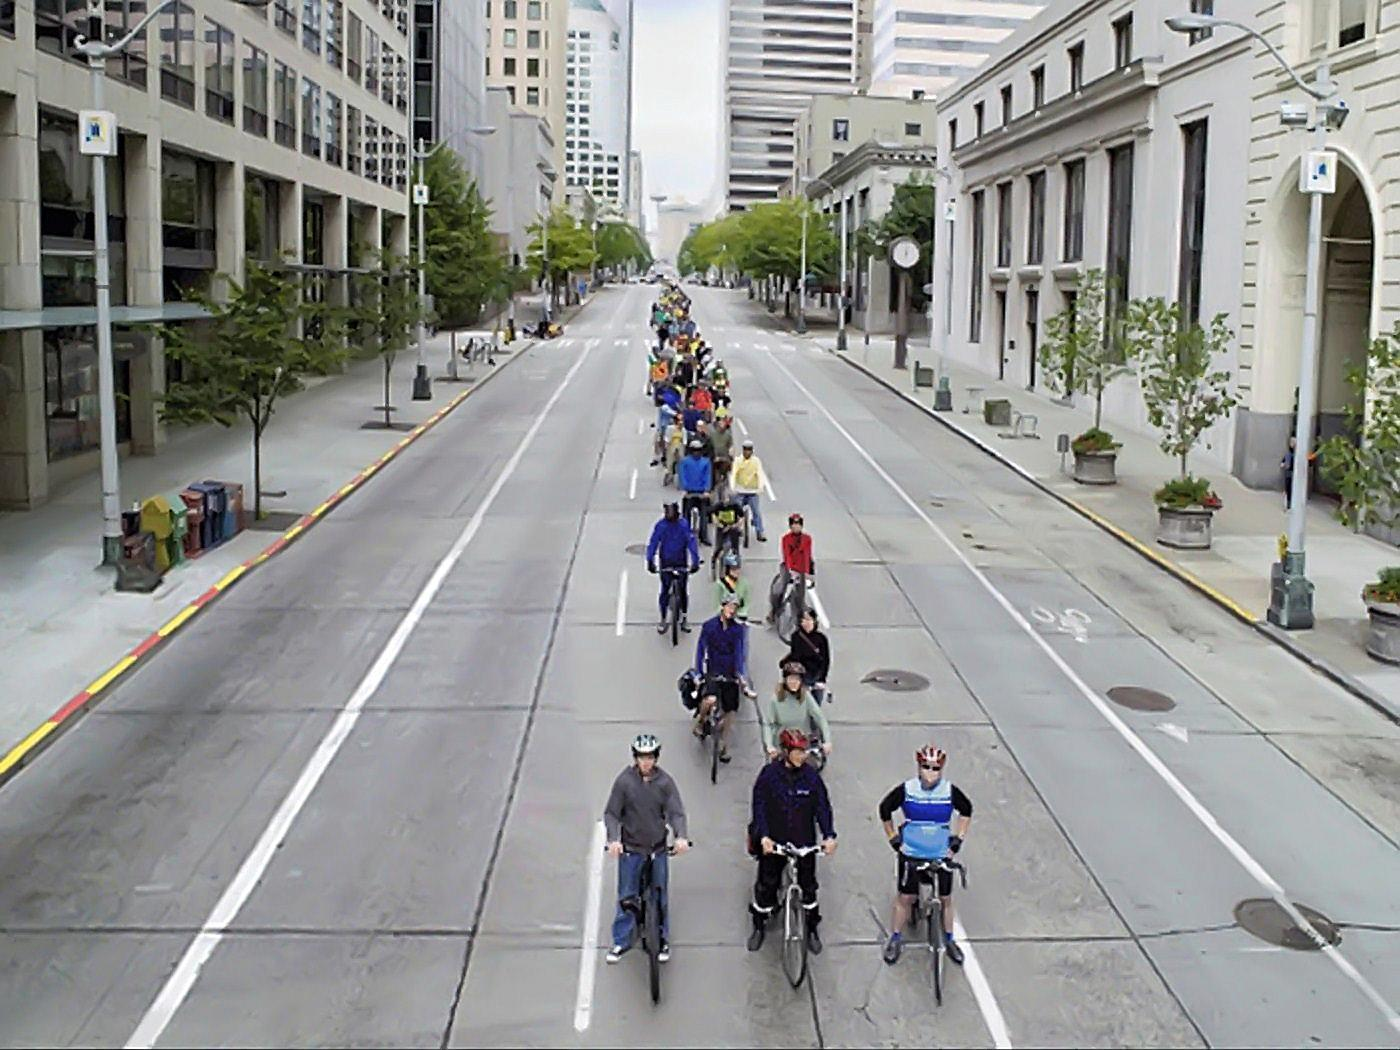 Space requirements of 200 cyclists